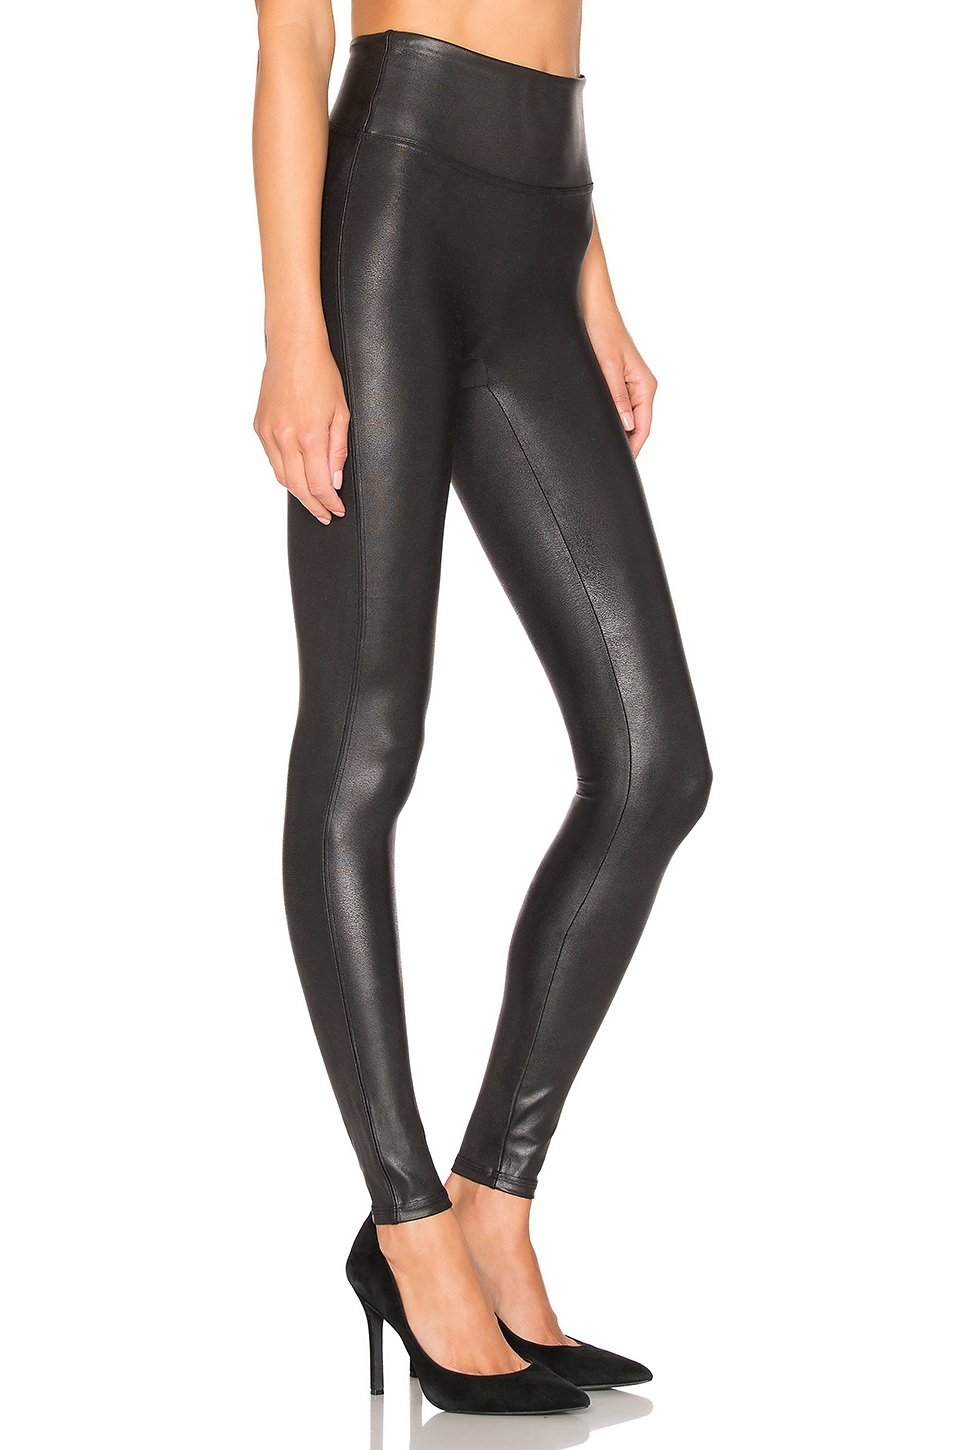 Faux Leather Leggings, view 2, click to view large image.